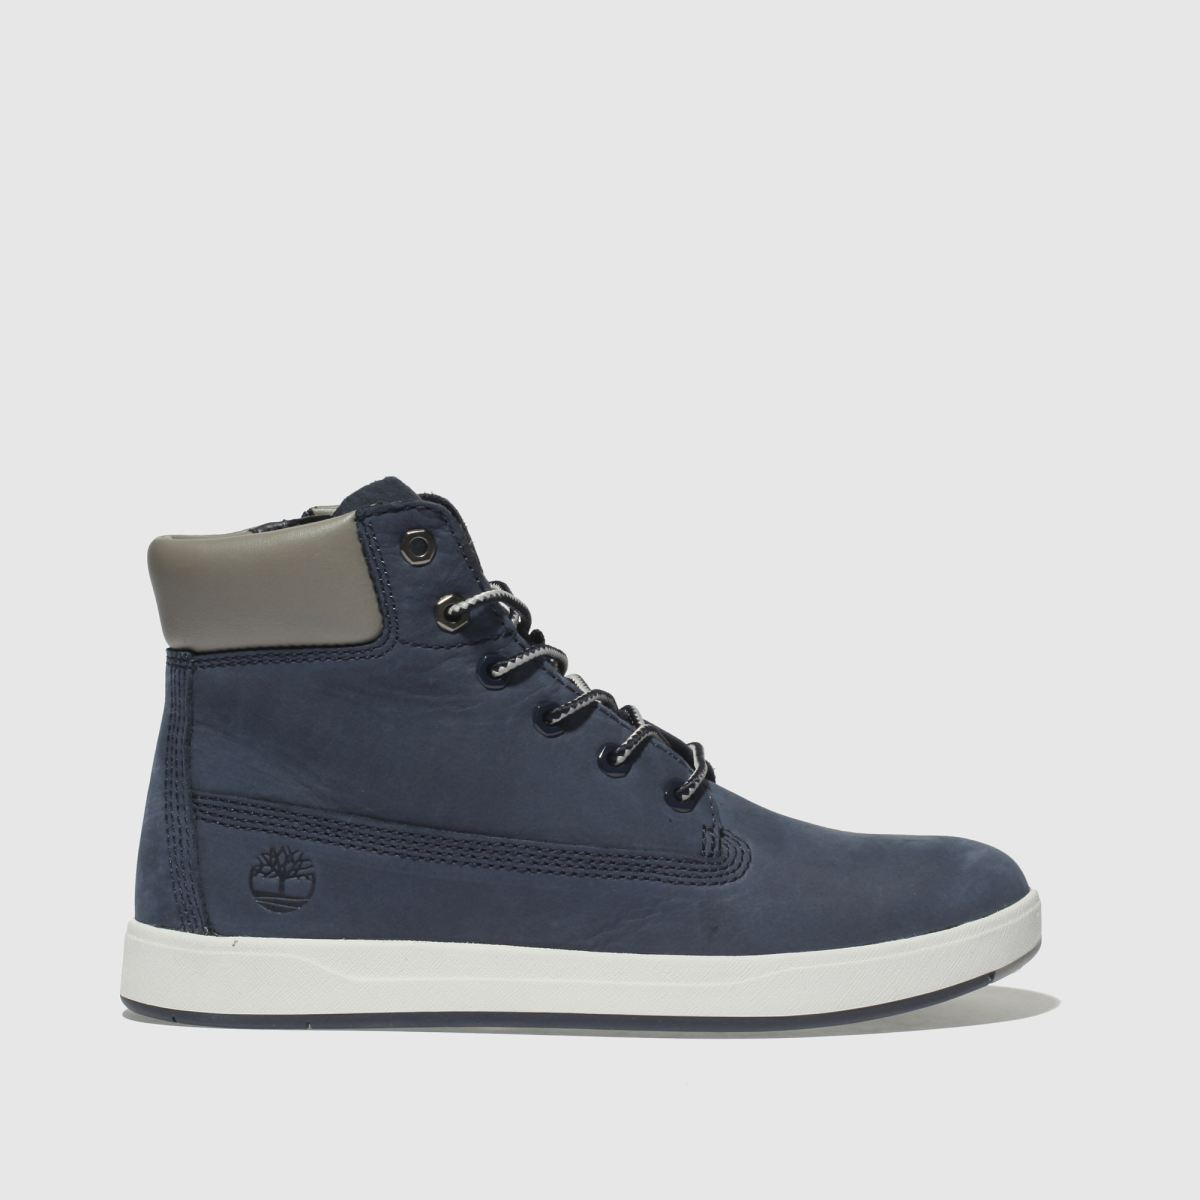 Timberland Navy Davis Square 6 Inch Boys Youth Youth